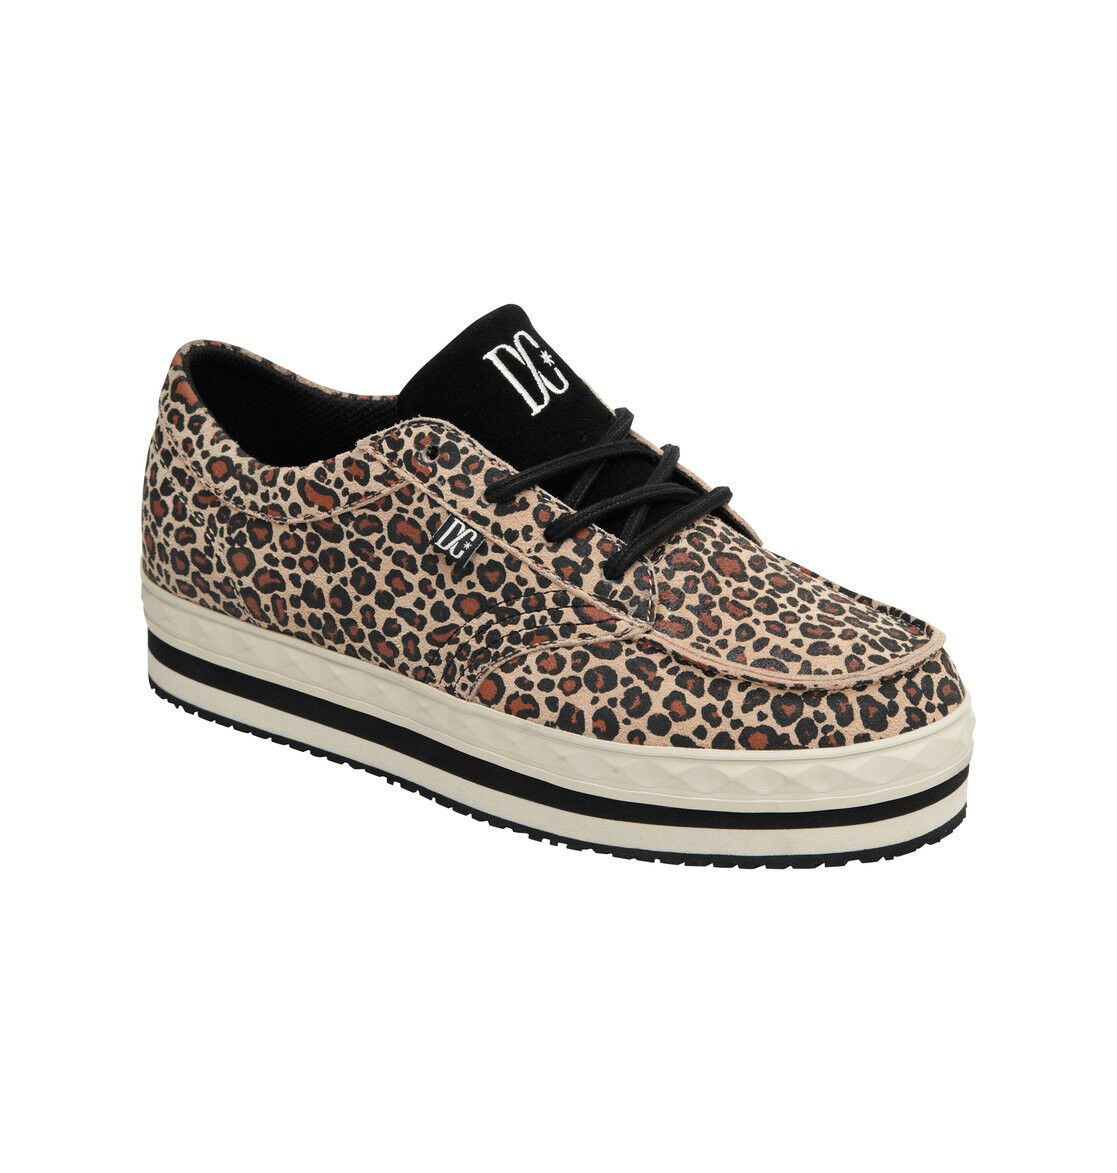 DC - CREEPER Womens shoes (NEW) Sizes 6-8 LEOPARD PRINT PRINT PRINT SNEAKERS   Free Shipping eae202